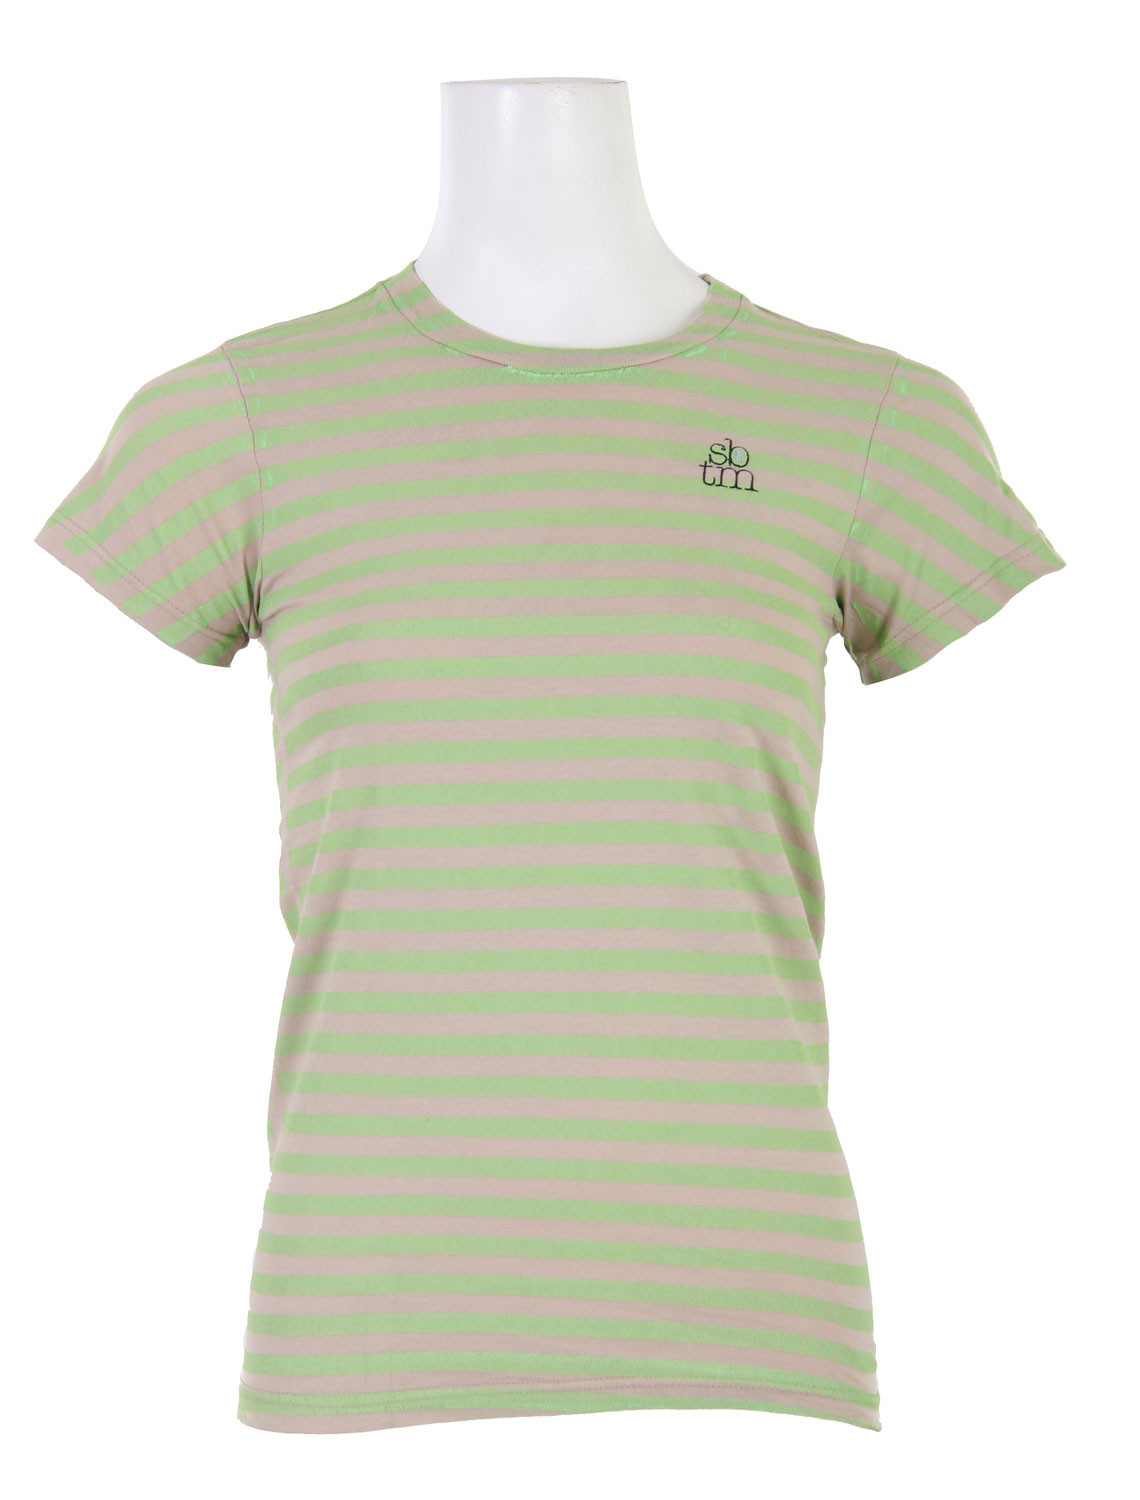 If you have been looking for that shirt that shows your style while being comfortable, then look no further because the Special Blend Stripes T-Shirt is exactly what you have been looking for. This shirt's cotton blend let's you show off your style while your on the slopes or just walking around town and guarantees that you will stay comfortable all day long. With the style and quality it's no surprise that everyone is choosing the Special Blend Stripes T-Shirt.Key Features of the Special Blend Stripes T-Shirt Topiary Stripe: 100% Cotton - $4.95